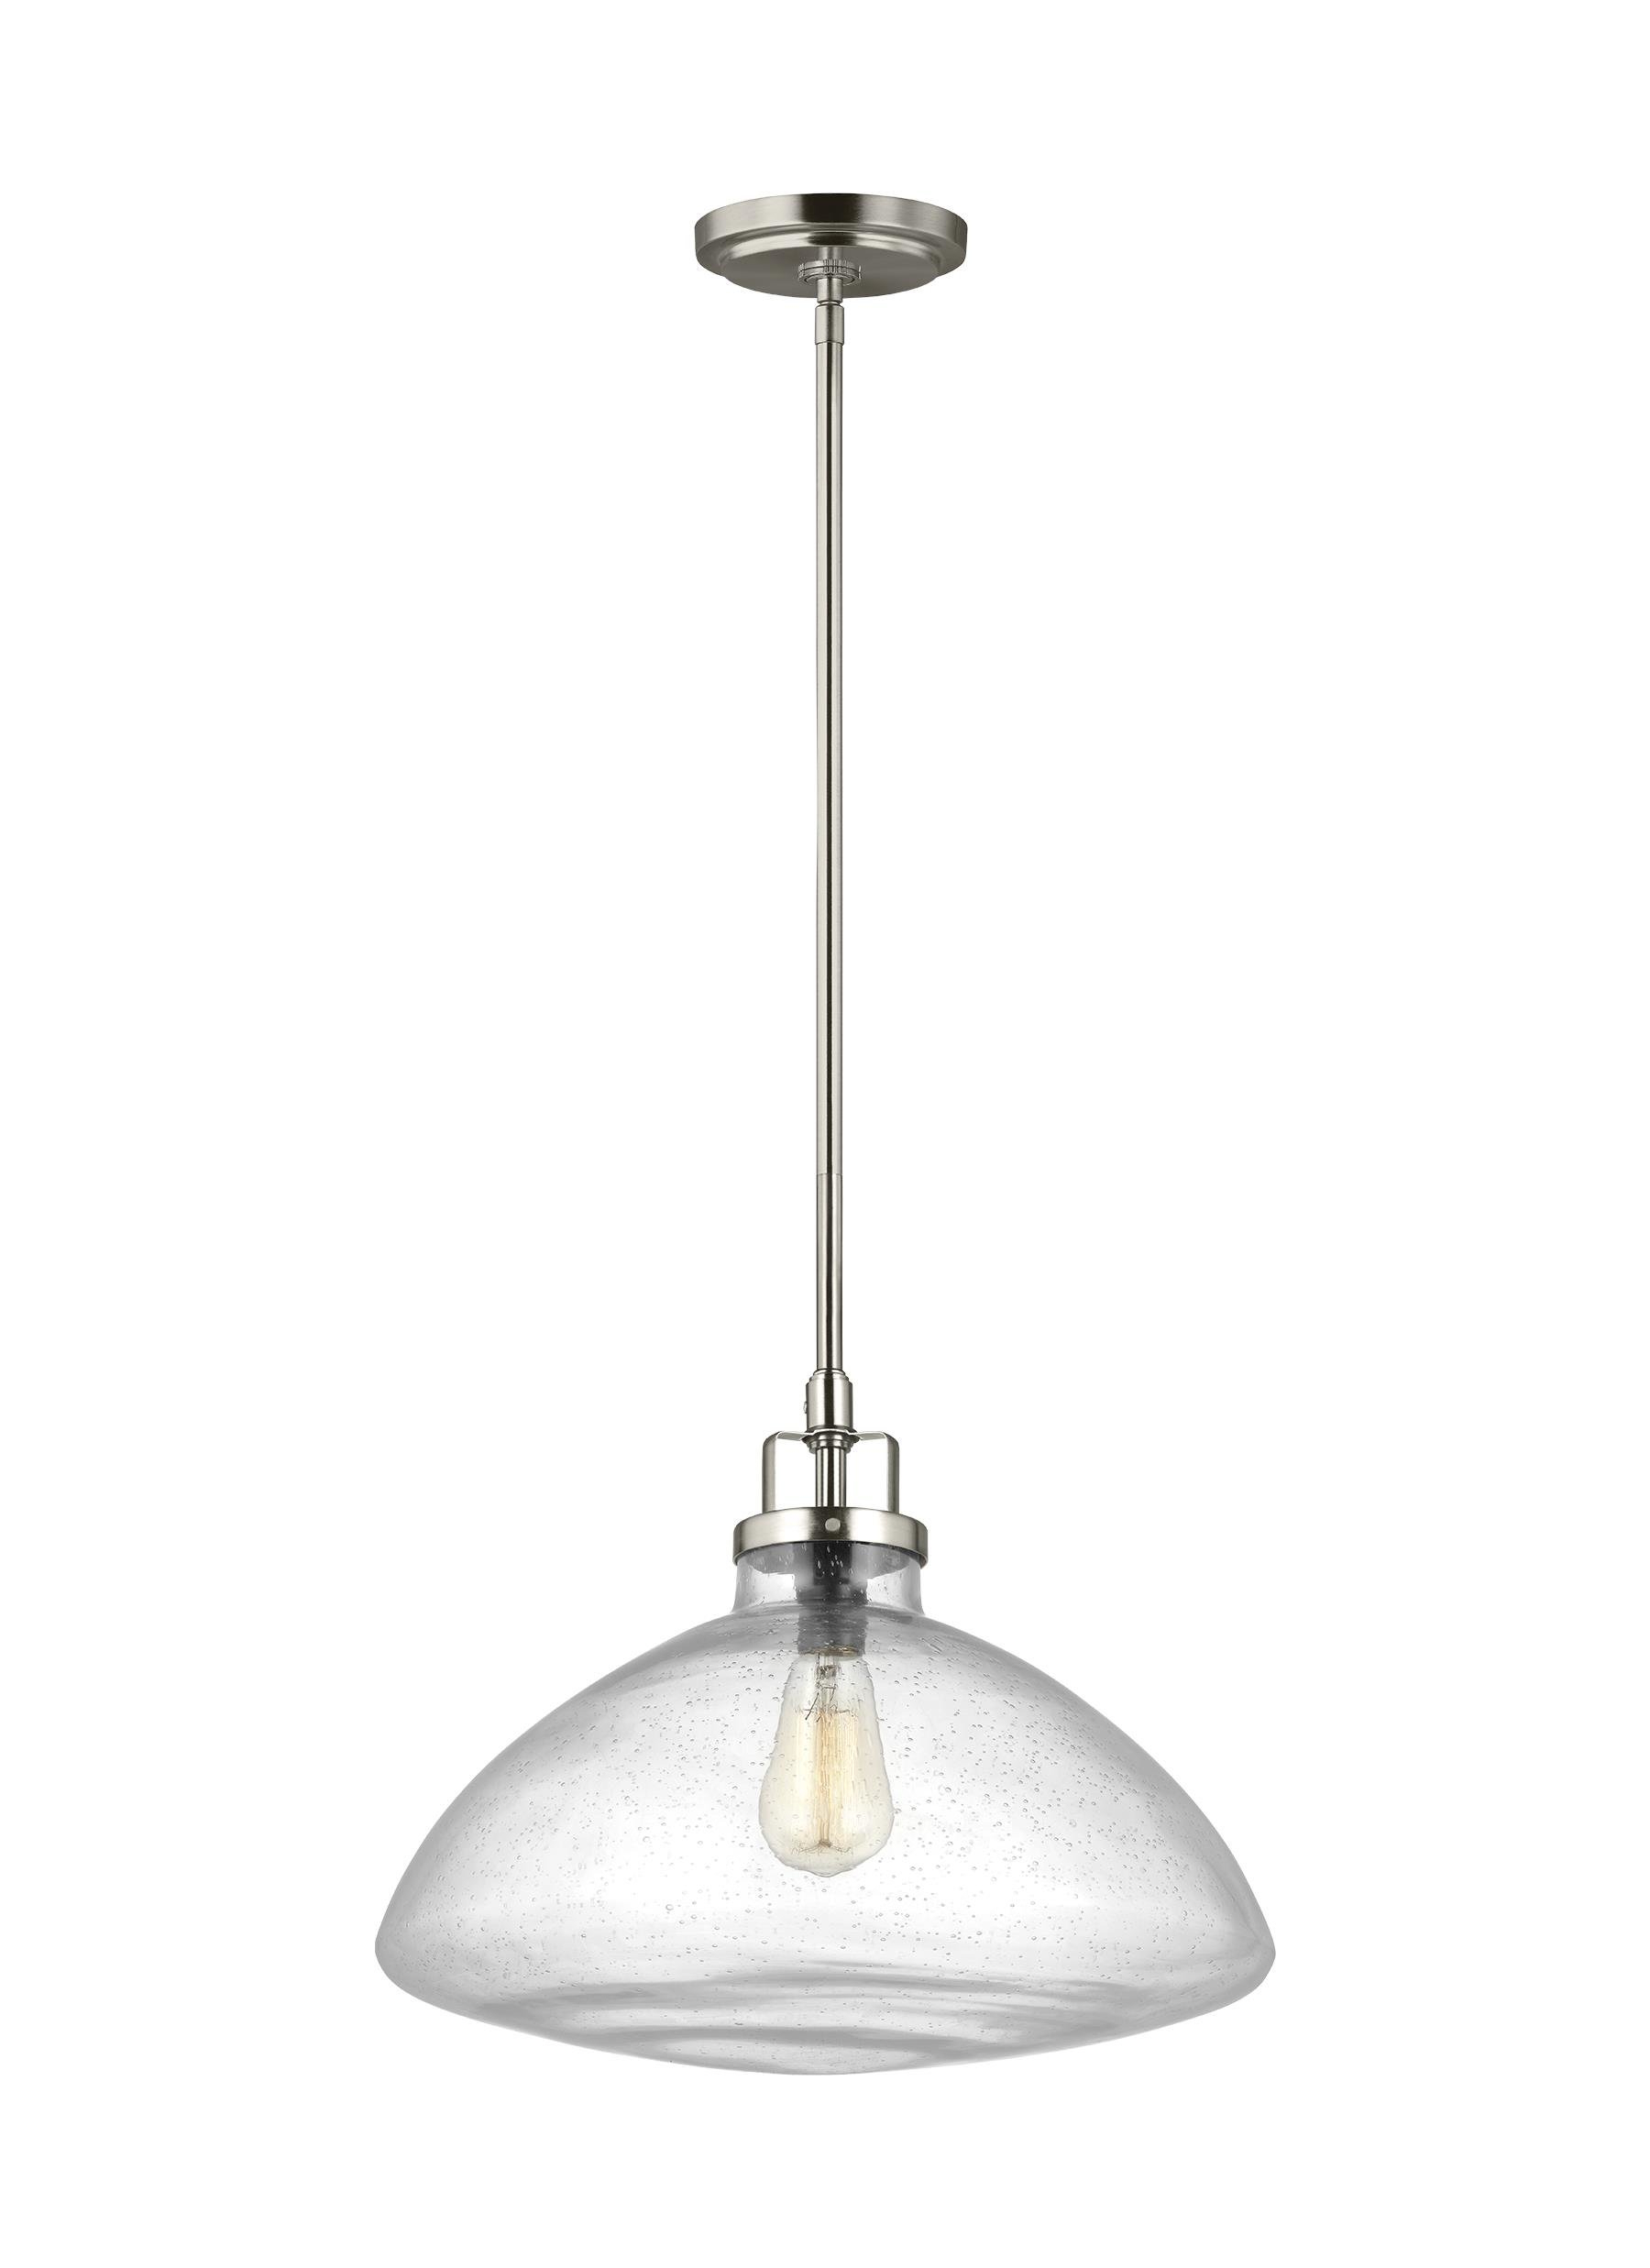 Houon 1 Light Single Schoolhouse Pendant In Most Current Granville 3 Light Single Dome Pendants (View 12 of 25)